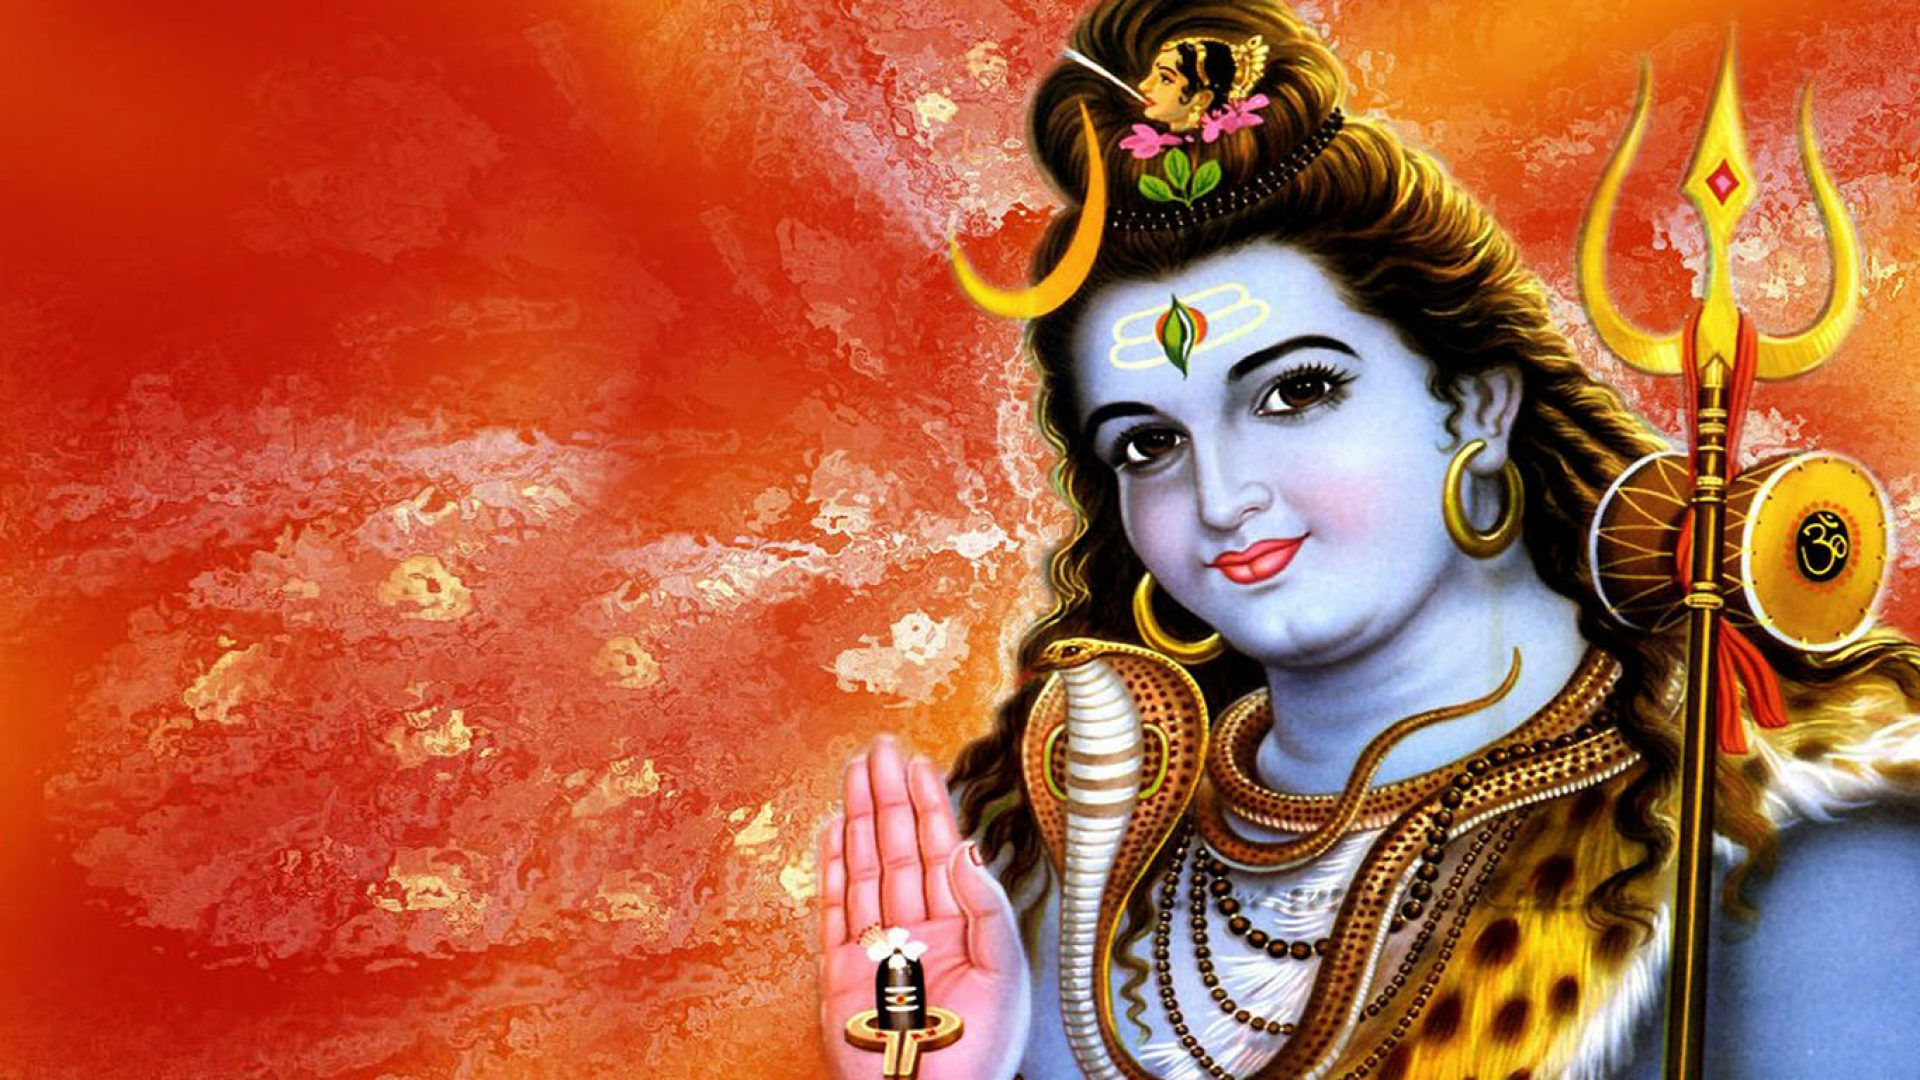 Lord Shiva Images 3d Hindu Gods And Goddesses